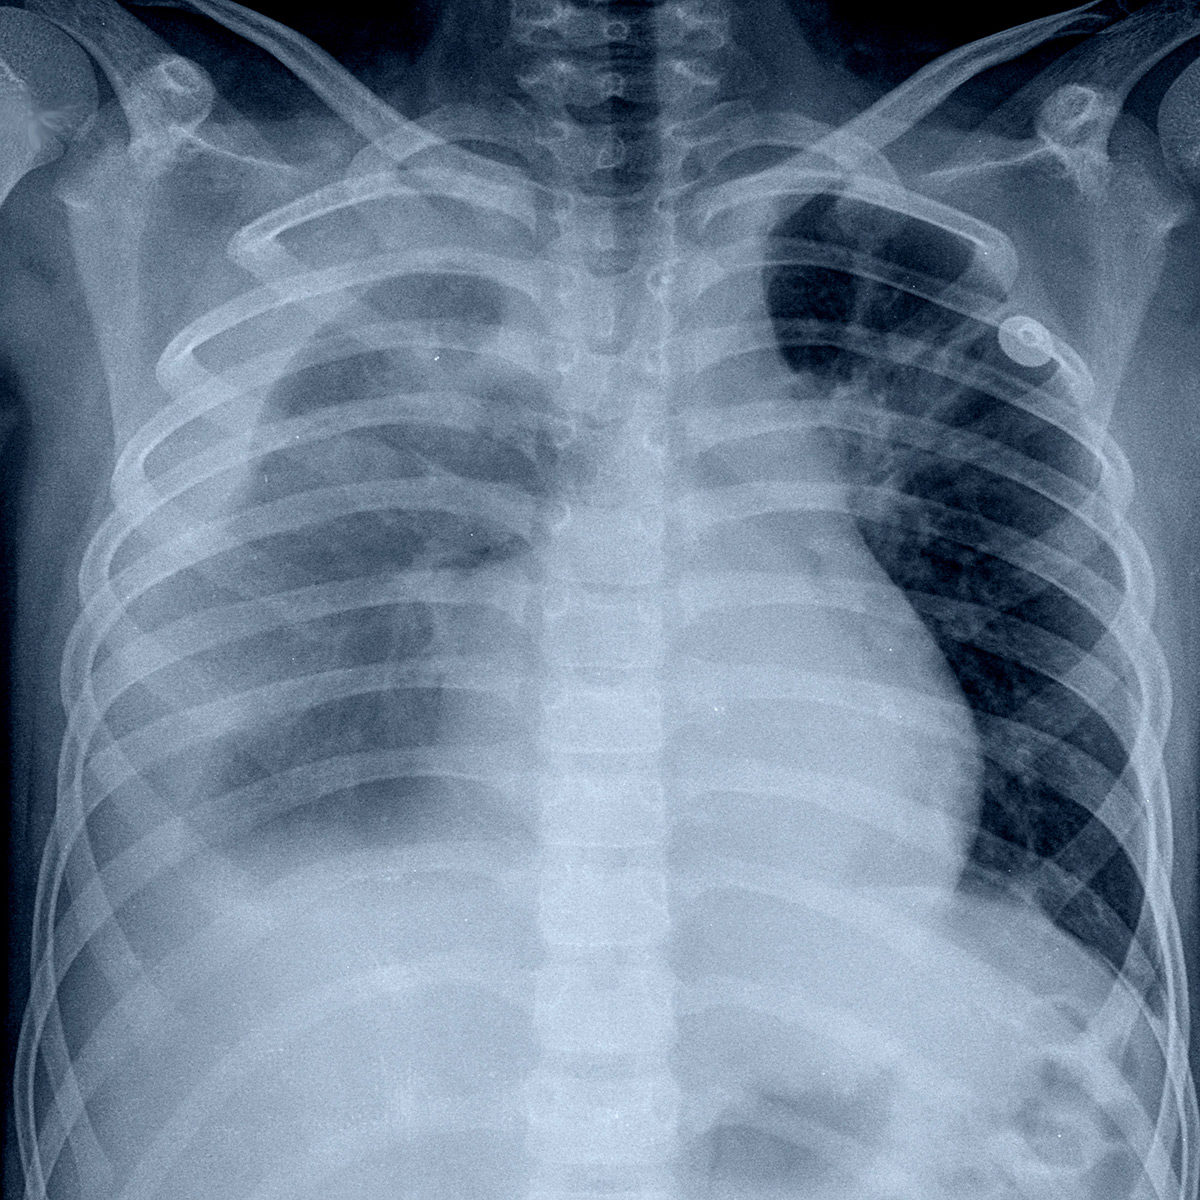 chest xray displaying pleural effusion caused by excessive accumulation of pleural body fluid